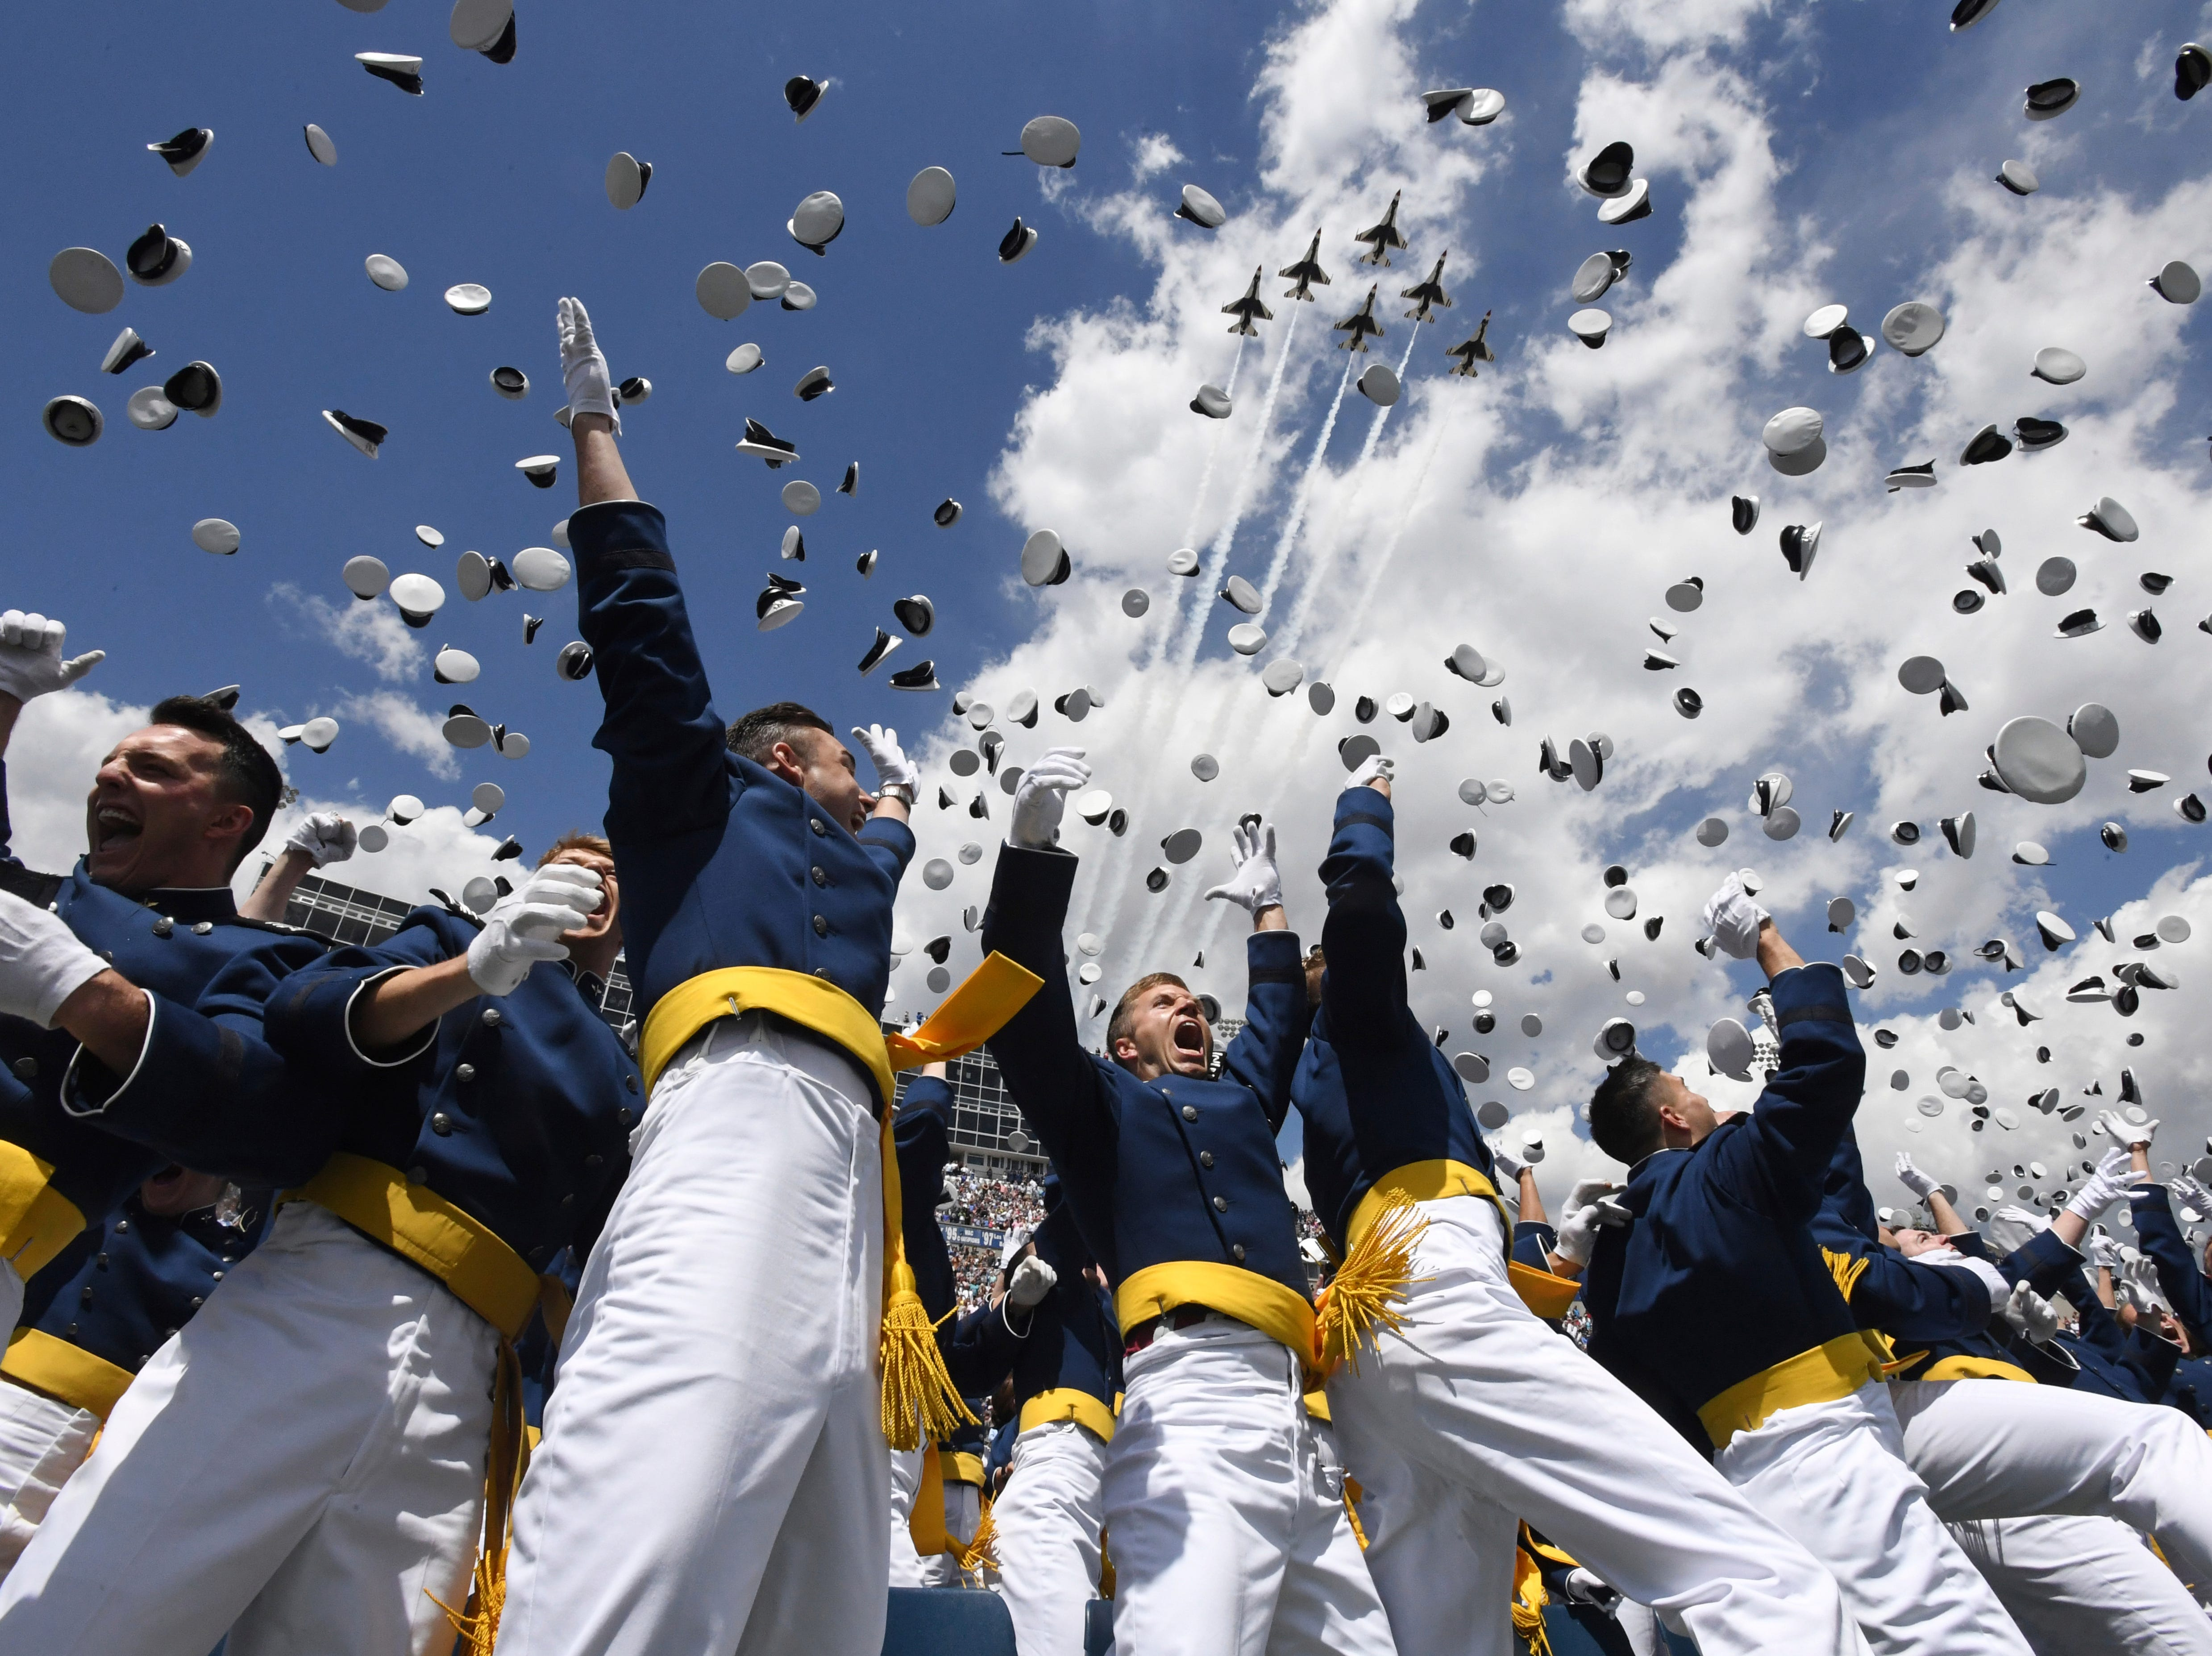 May 23, 2018: U.S. Air Force Academy cadets toss their hats in the air as the Thunderbirds fly overhead during the cadets' graduation ceremony in Colorado Springs, Colo.